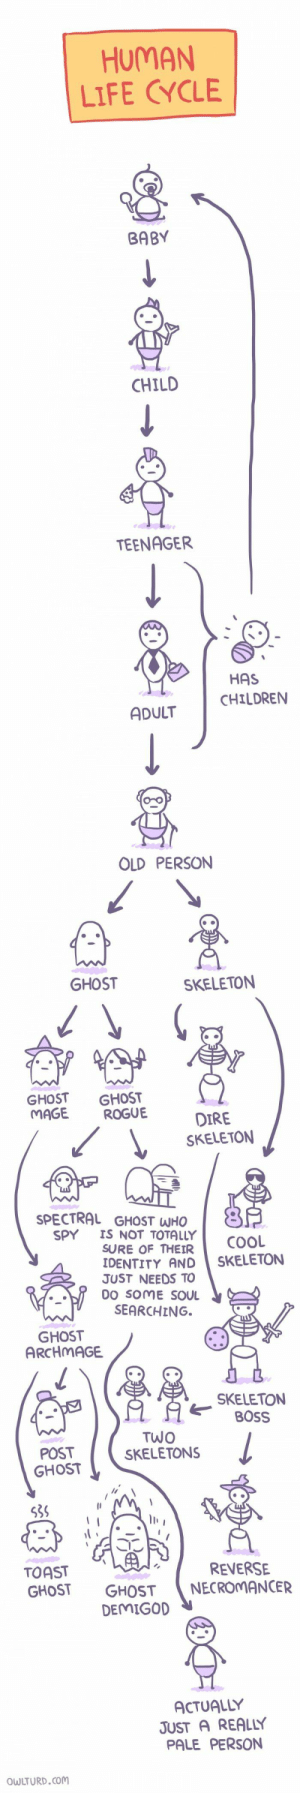 : HUMAN  LIFE CYCLE  BABY  CHILD  TEENAGER  HAS  CHILDRENN  ADULT  OLD PERSON  GHOST  SKELETON  GHOST GHOST  MAGE ROGUE  DIRE  SKELETON  SPECTRAL GHOST WHO  SPY IS NOT TOTALLY  SURE OF THEIR  COOL  DENTITY AND SKELETON  JUST NEEDS TO  DO SOME SOU  SEARCHING.  GHOST  ARCHMAGE  SKELETON  OSS  POST  GHOST  TWO  SKELETONS  la  539  TOAST  GHOST GHOSTNECROMANCER  REVERSE  DEMIGO  ACTUALLY  JUST A REALLY  PALE PERSON  WLTURD.com